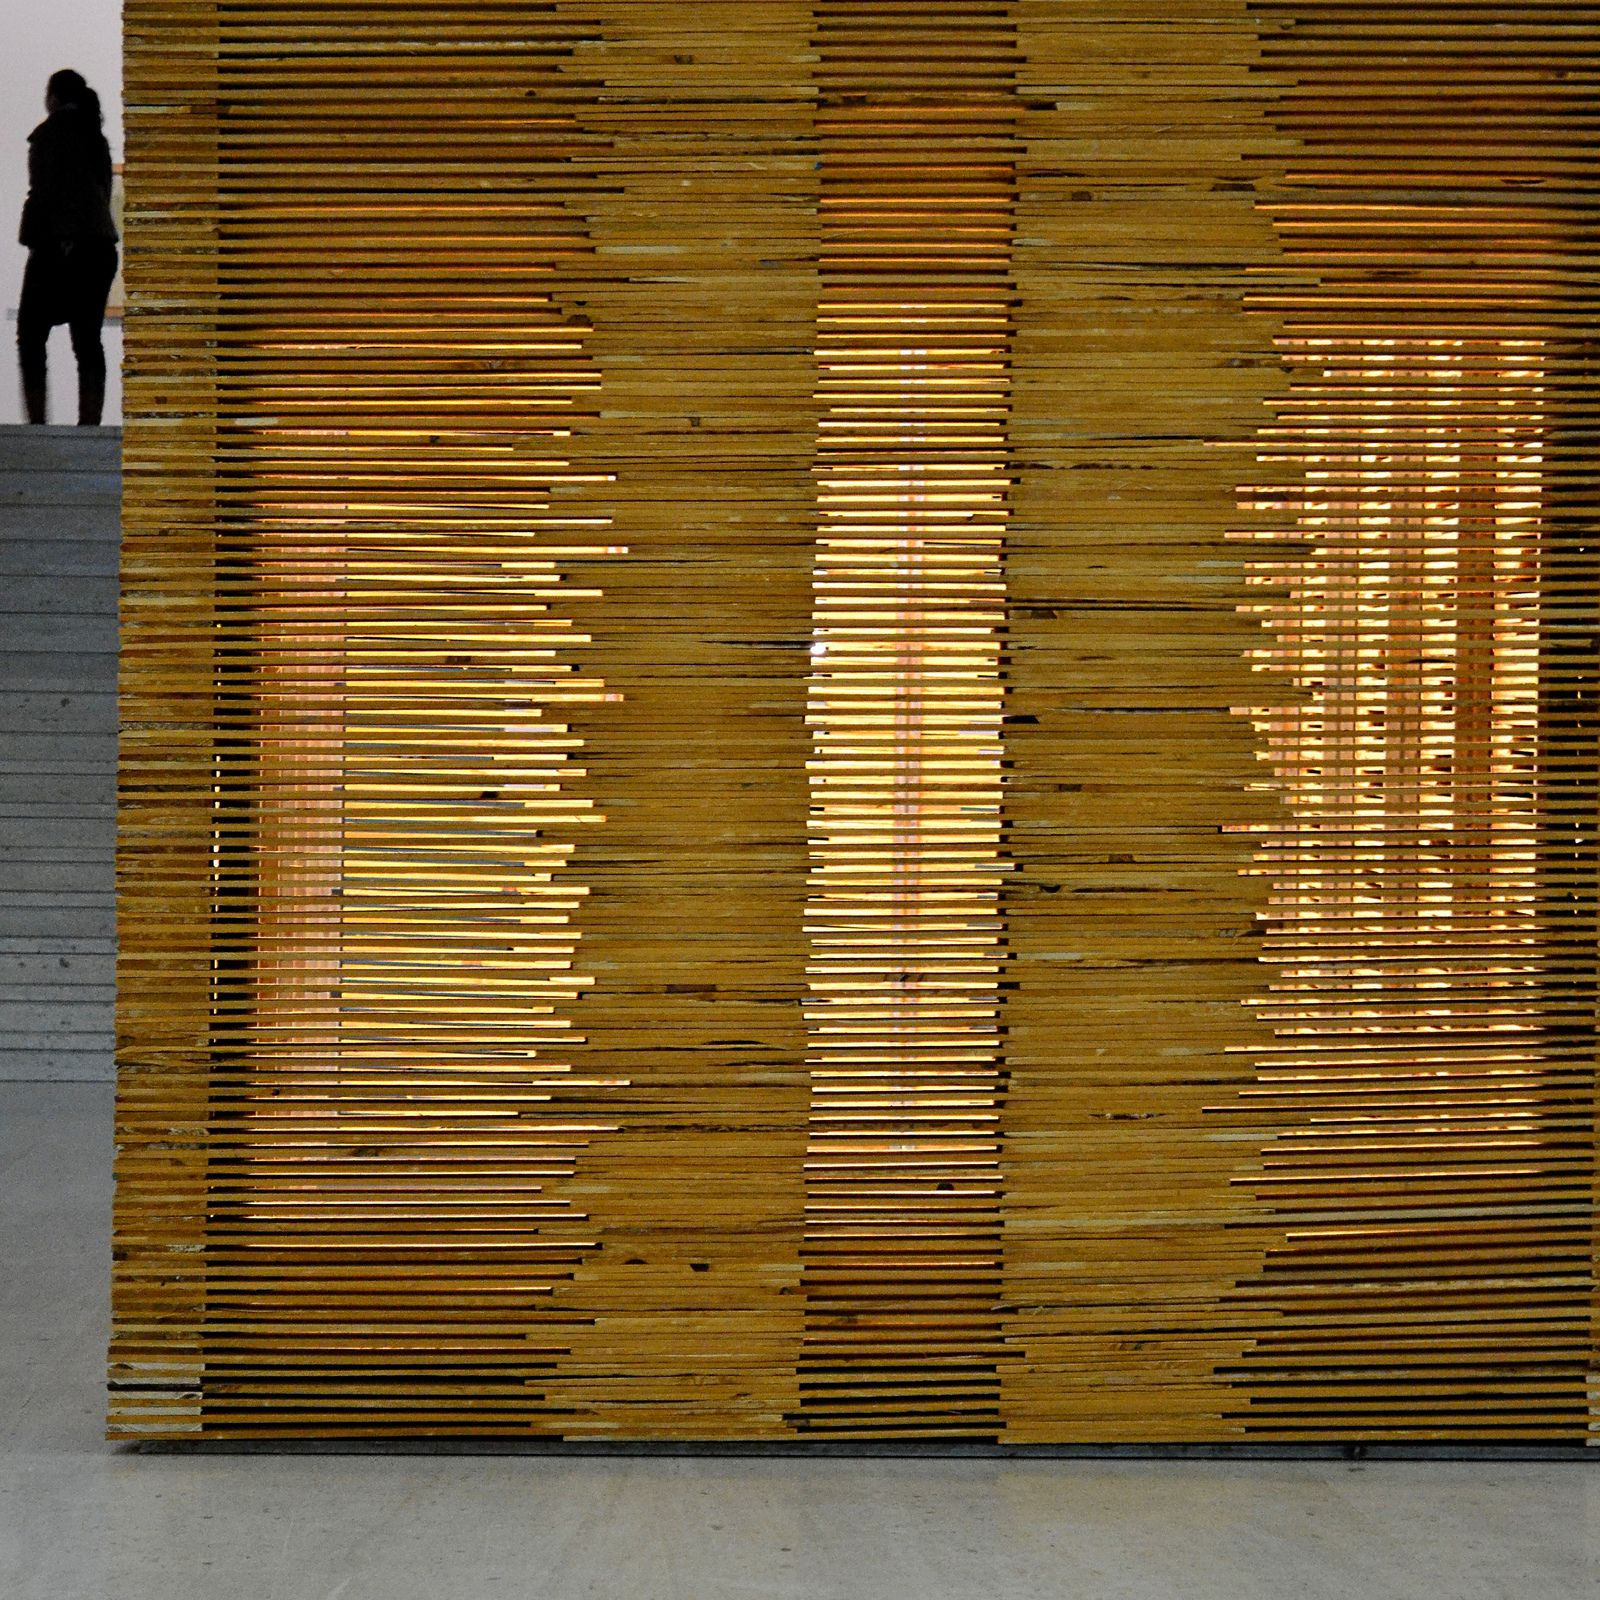 Exploring relations of permeability | Modern art, Exhibitions and Modern